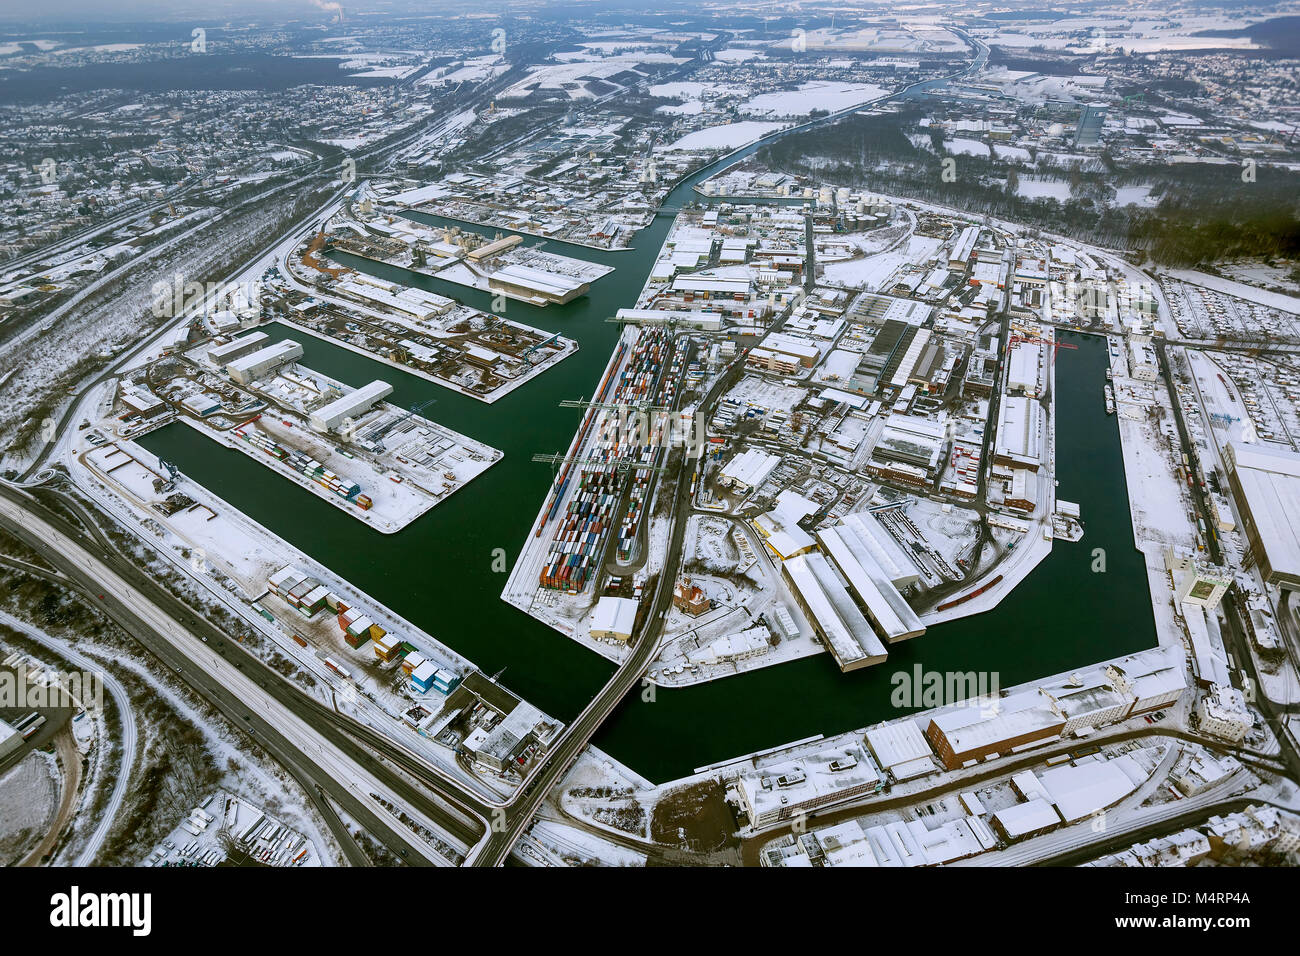 Aerial view, container port Dortmund, inland port, Dortmund harbor with the Envio administration PCB scandal, Dortmund, - Stock Image